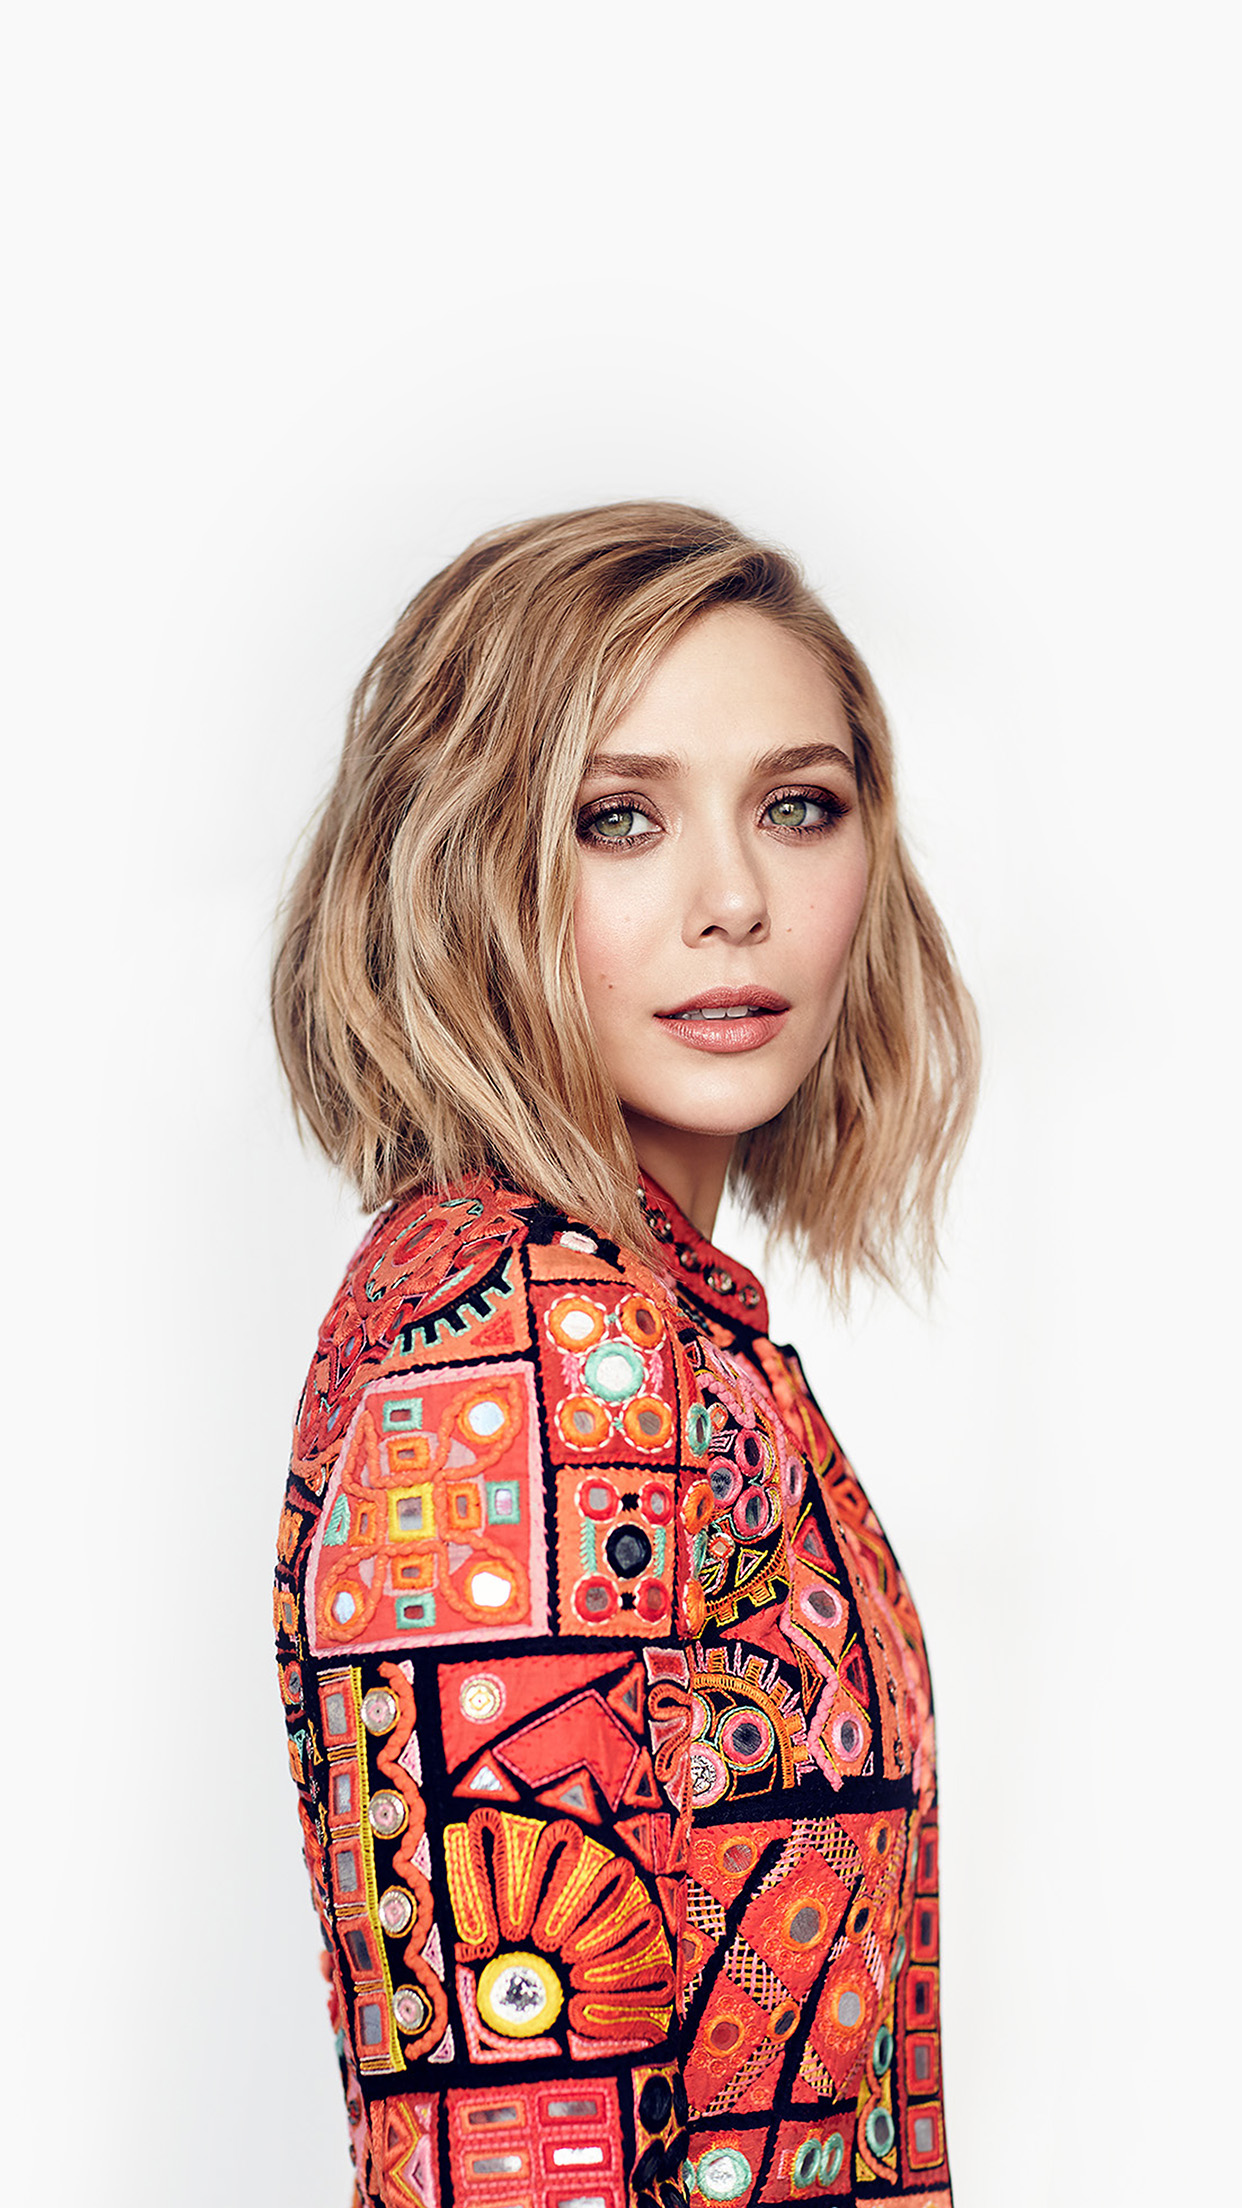 Fall Winter Iphone Wallpaper Papers Co Iphone Wallpaper Hj16 Elizabeth Olsen